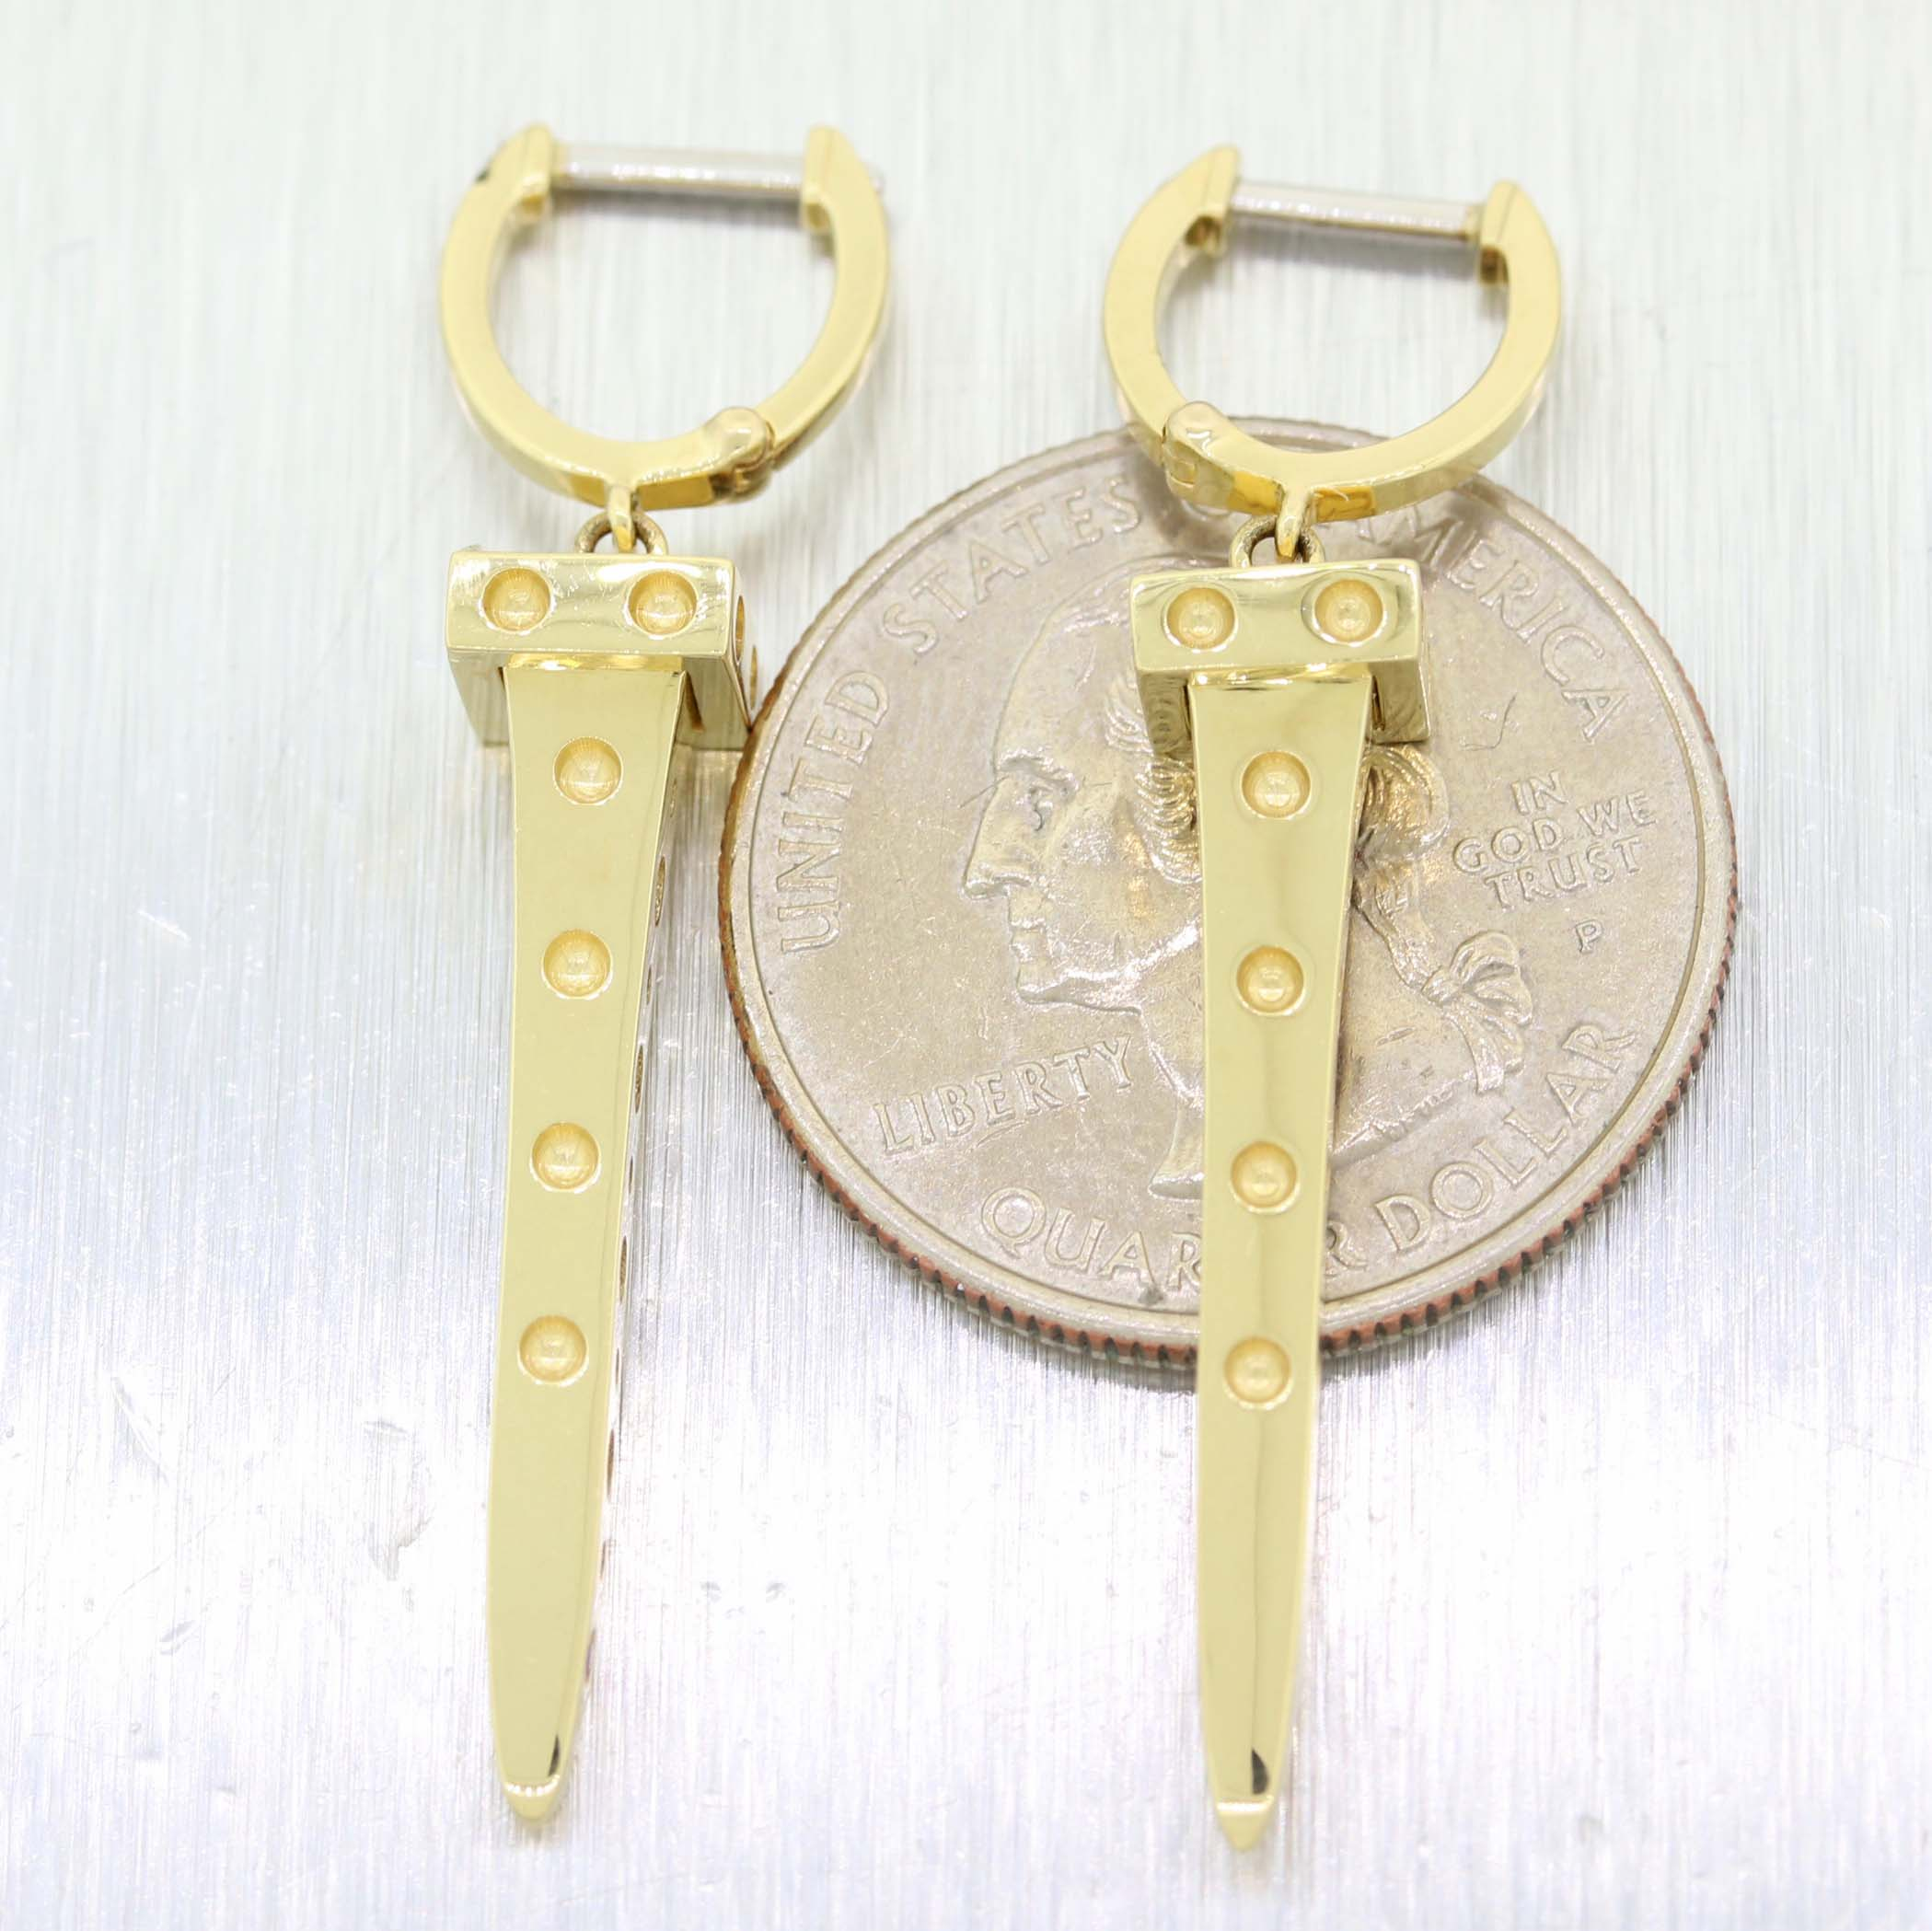 Roberto Coin Pois Moi Chiodo Solid 18k Yellow Gold Drop Dangle Earrings A9